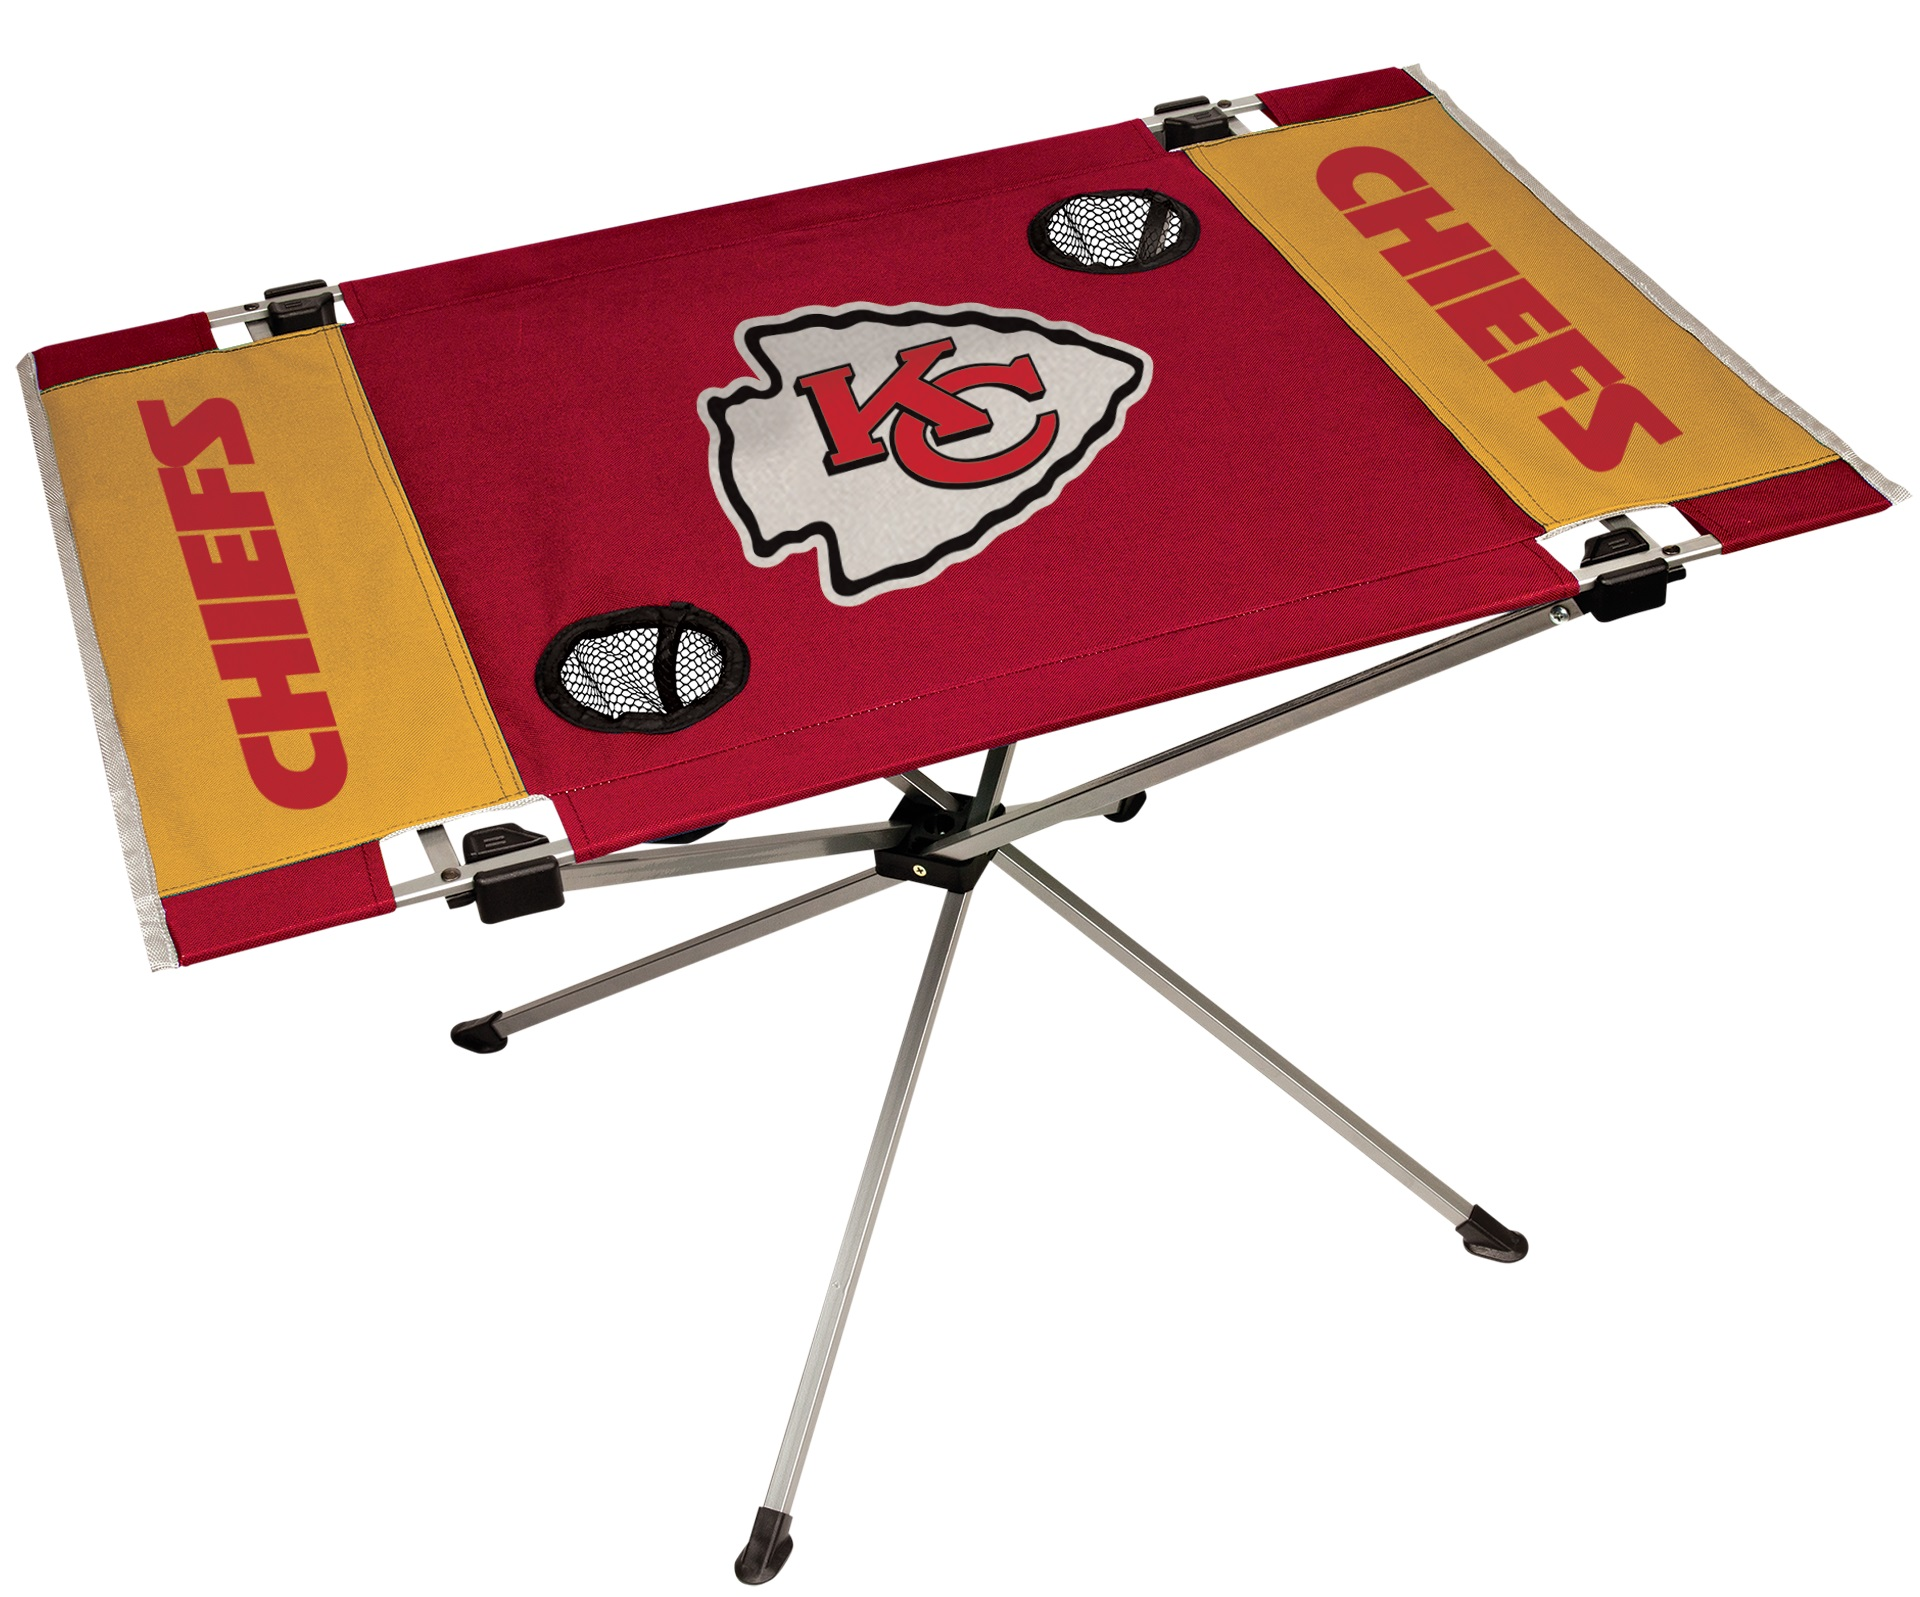 Toys Tables And Chairs - 1509933923 - Kansas City Chiefs Table Endzone Style 1509933923